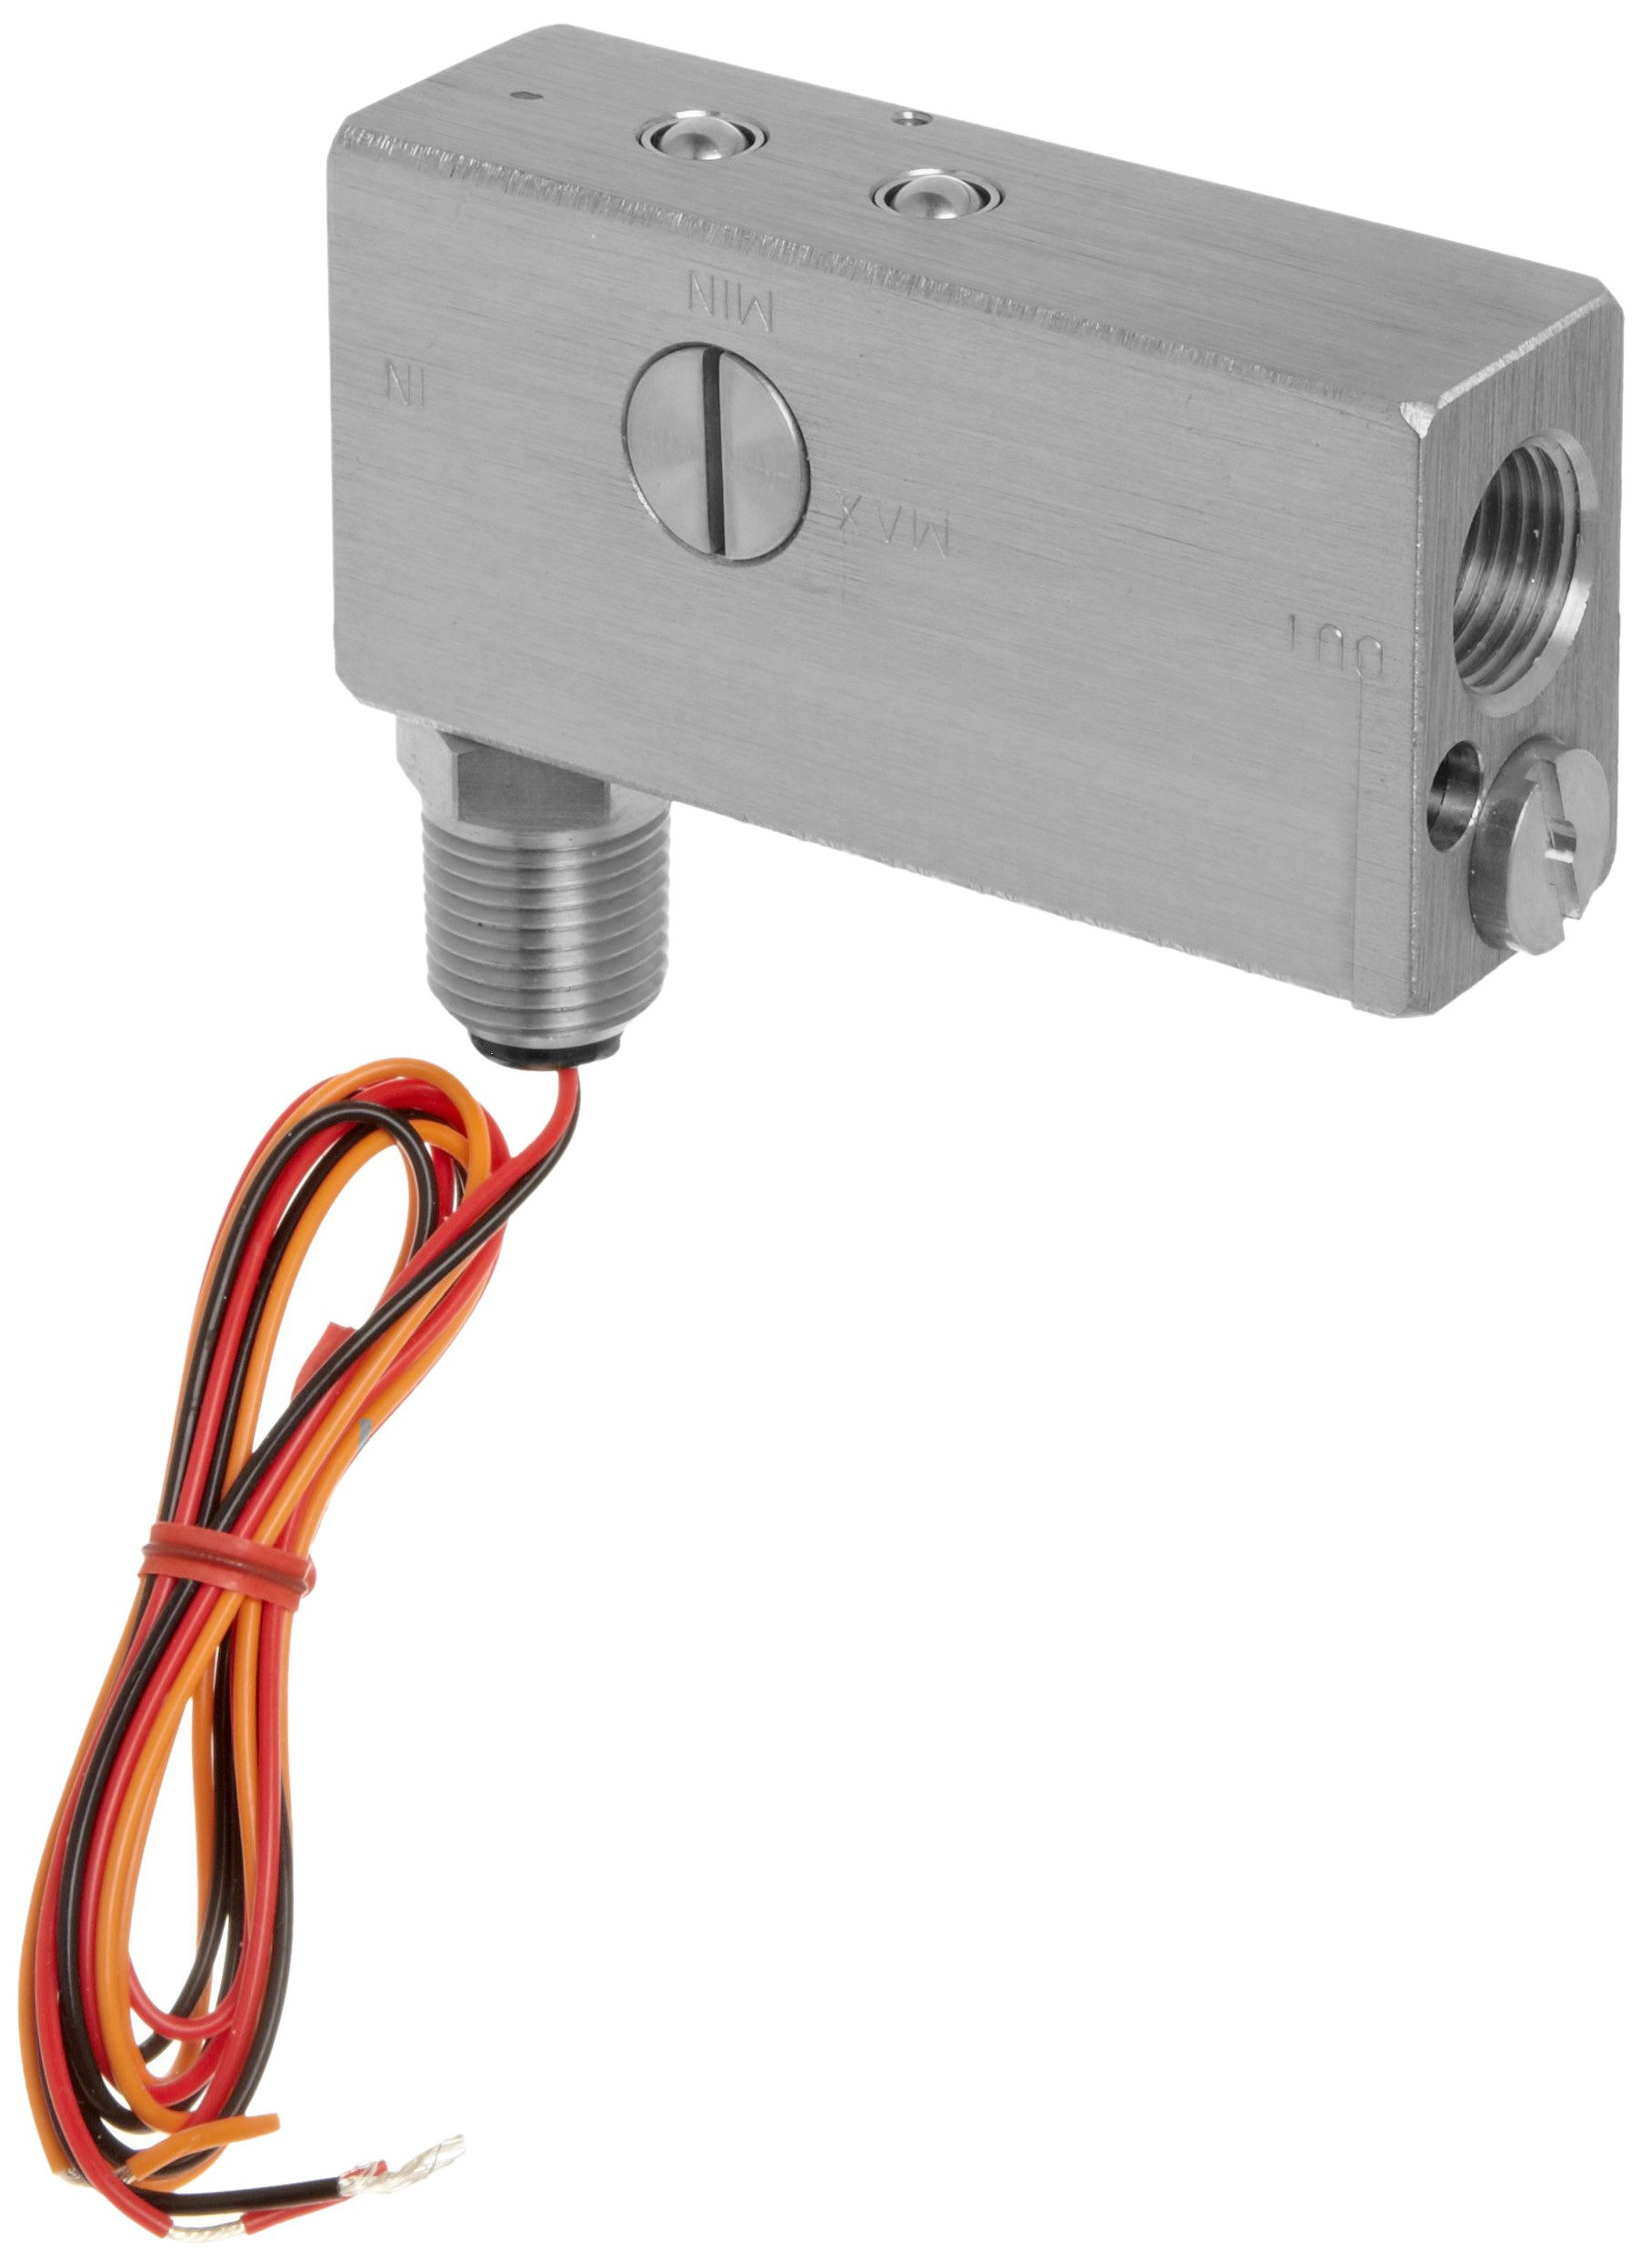 Gems Sensors FS-10798  Series Stainless Steel 316 Flow Switch For Use With Liquids, Inline, Piston Type, With 1/2'' Conduit Connector, 0.50 - 20 gpm Flow Setting Adjustment Range, 1/2'' NPT Female